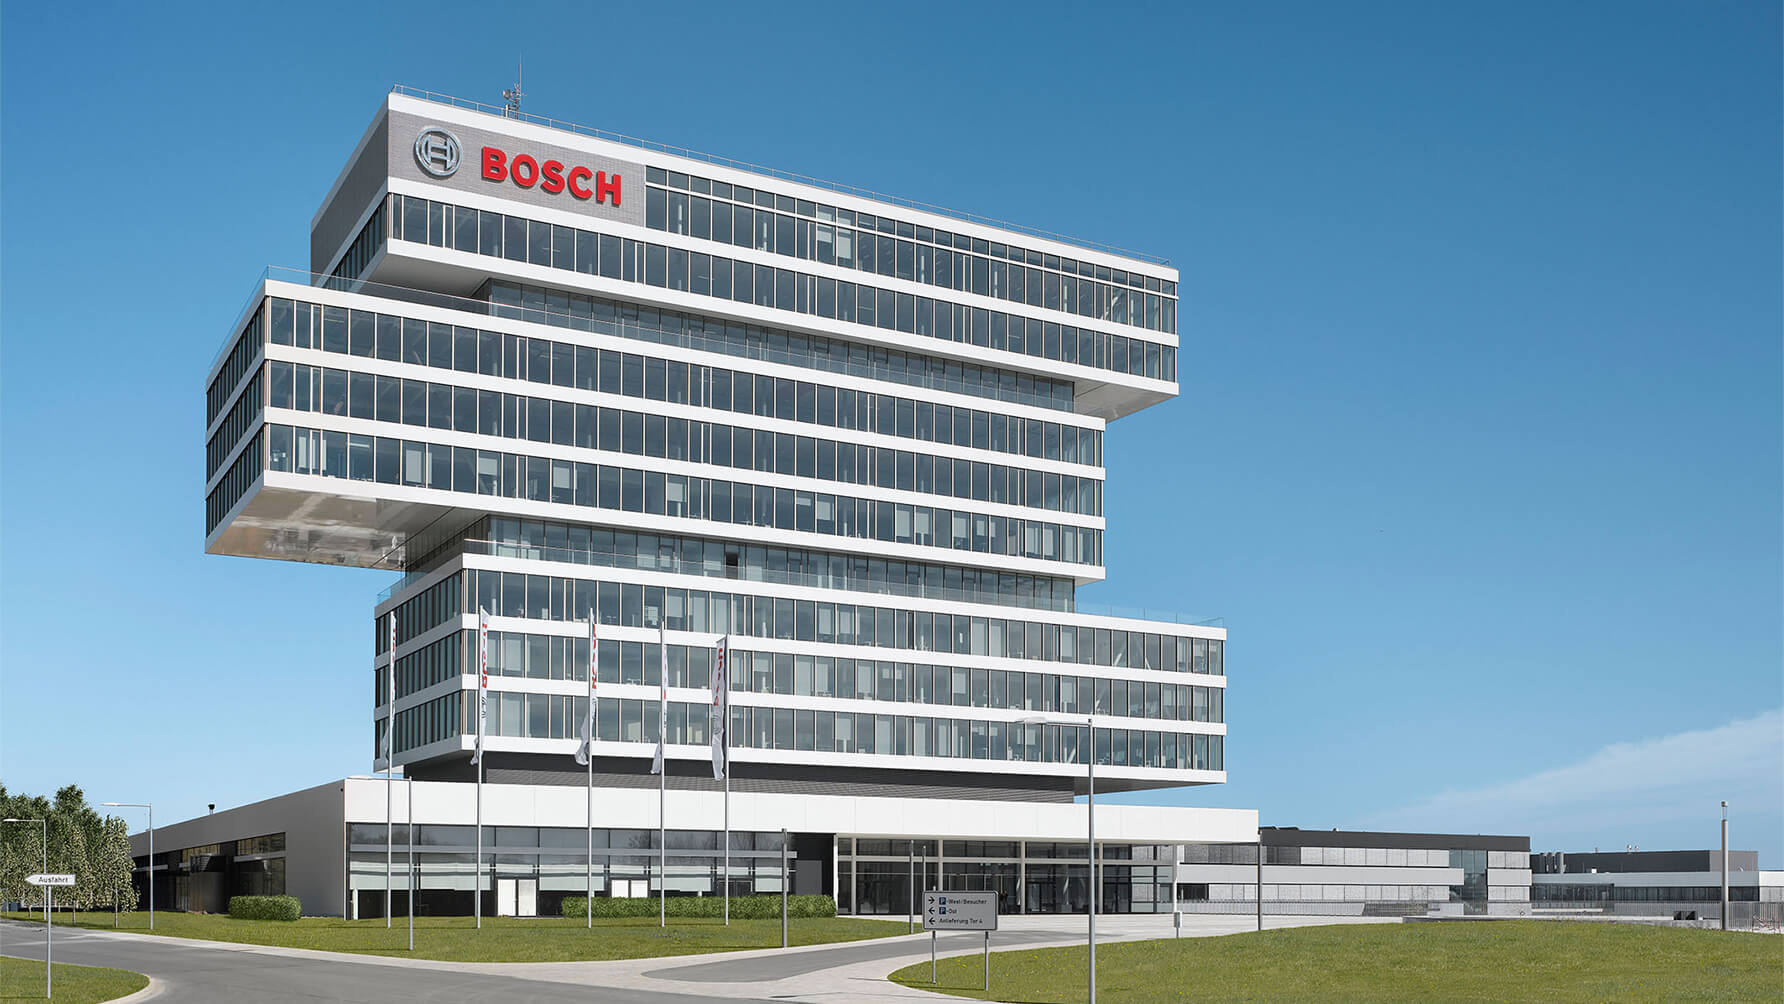 Invincible Company of the Month: Bosch